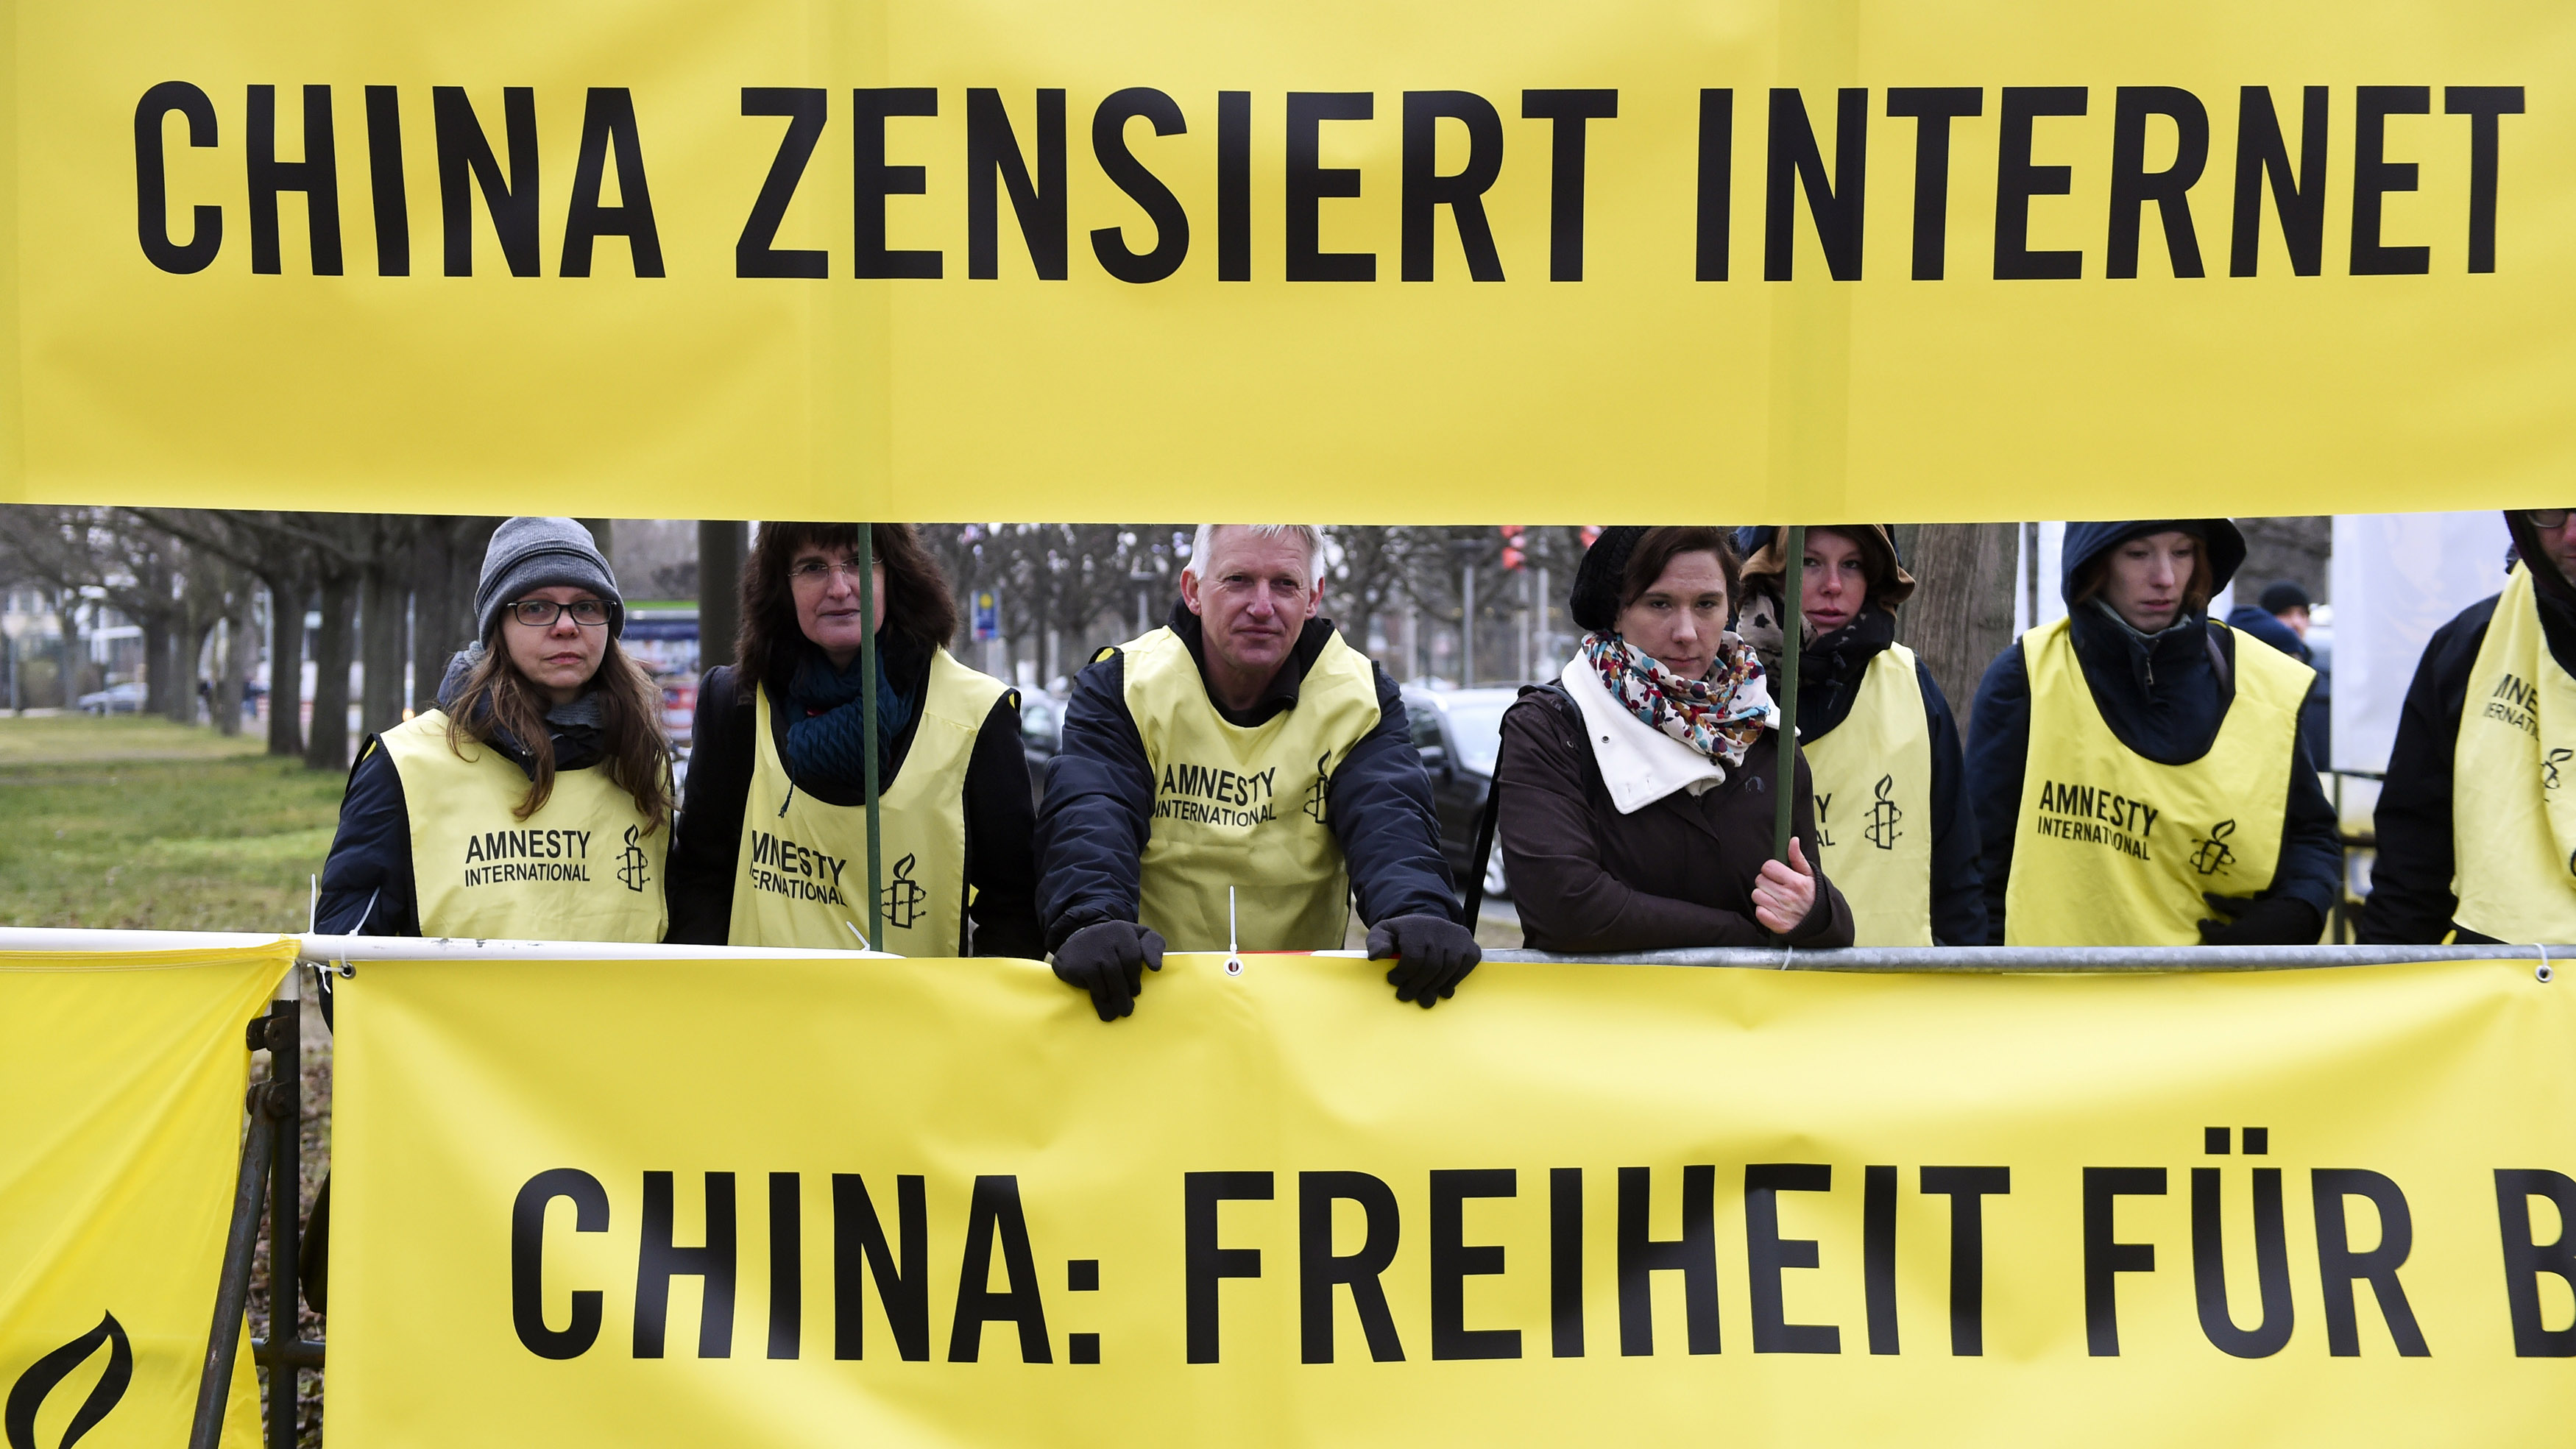 Members of Amnesty International hold a banner protesting internet censorship in China.